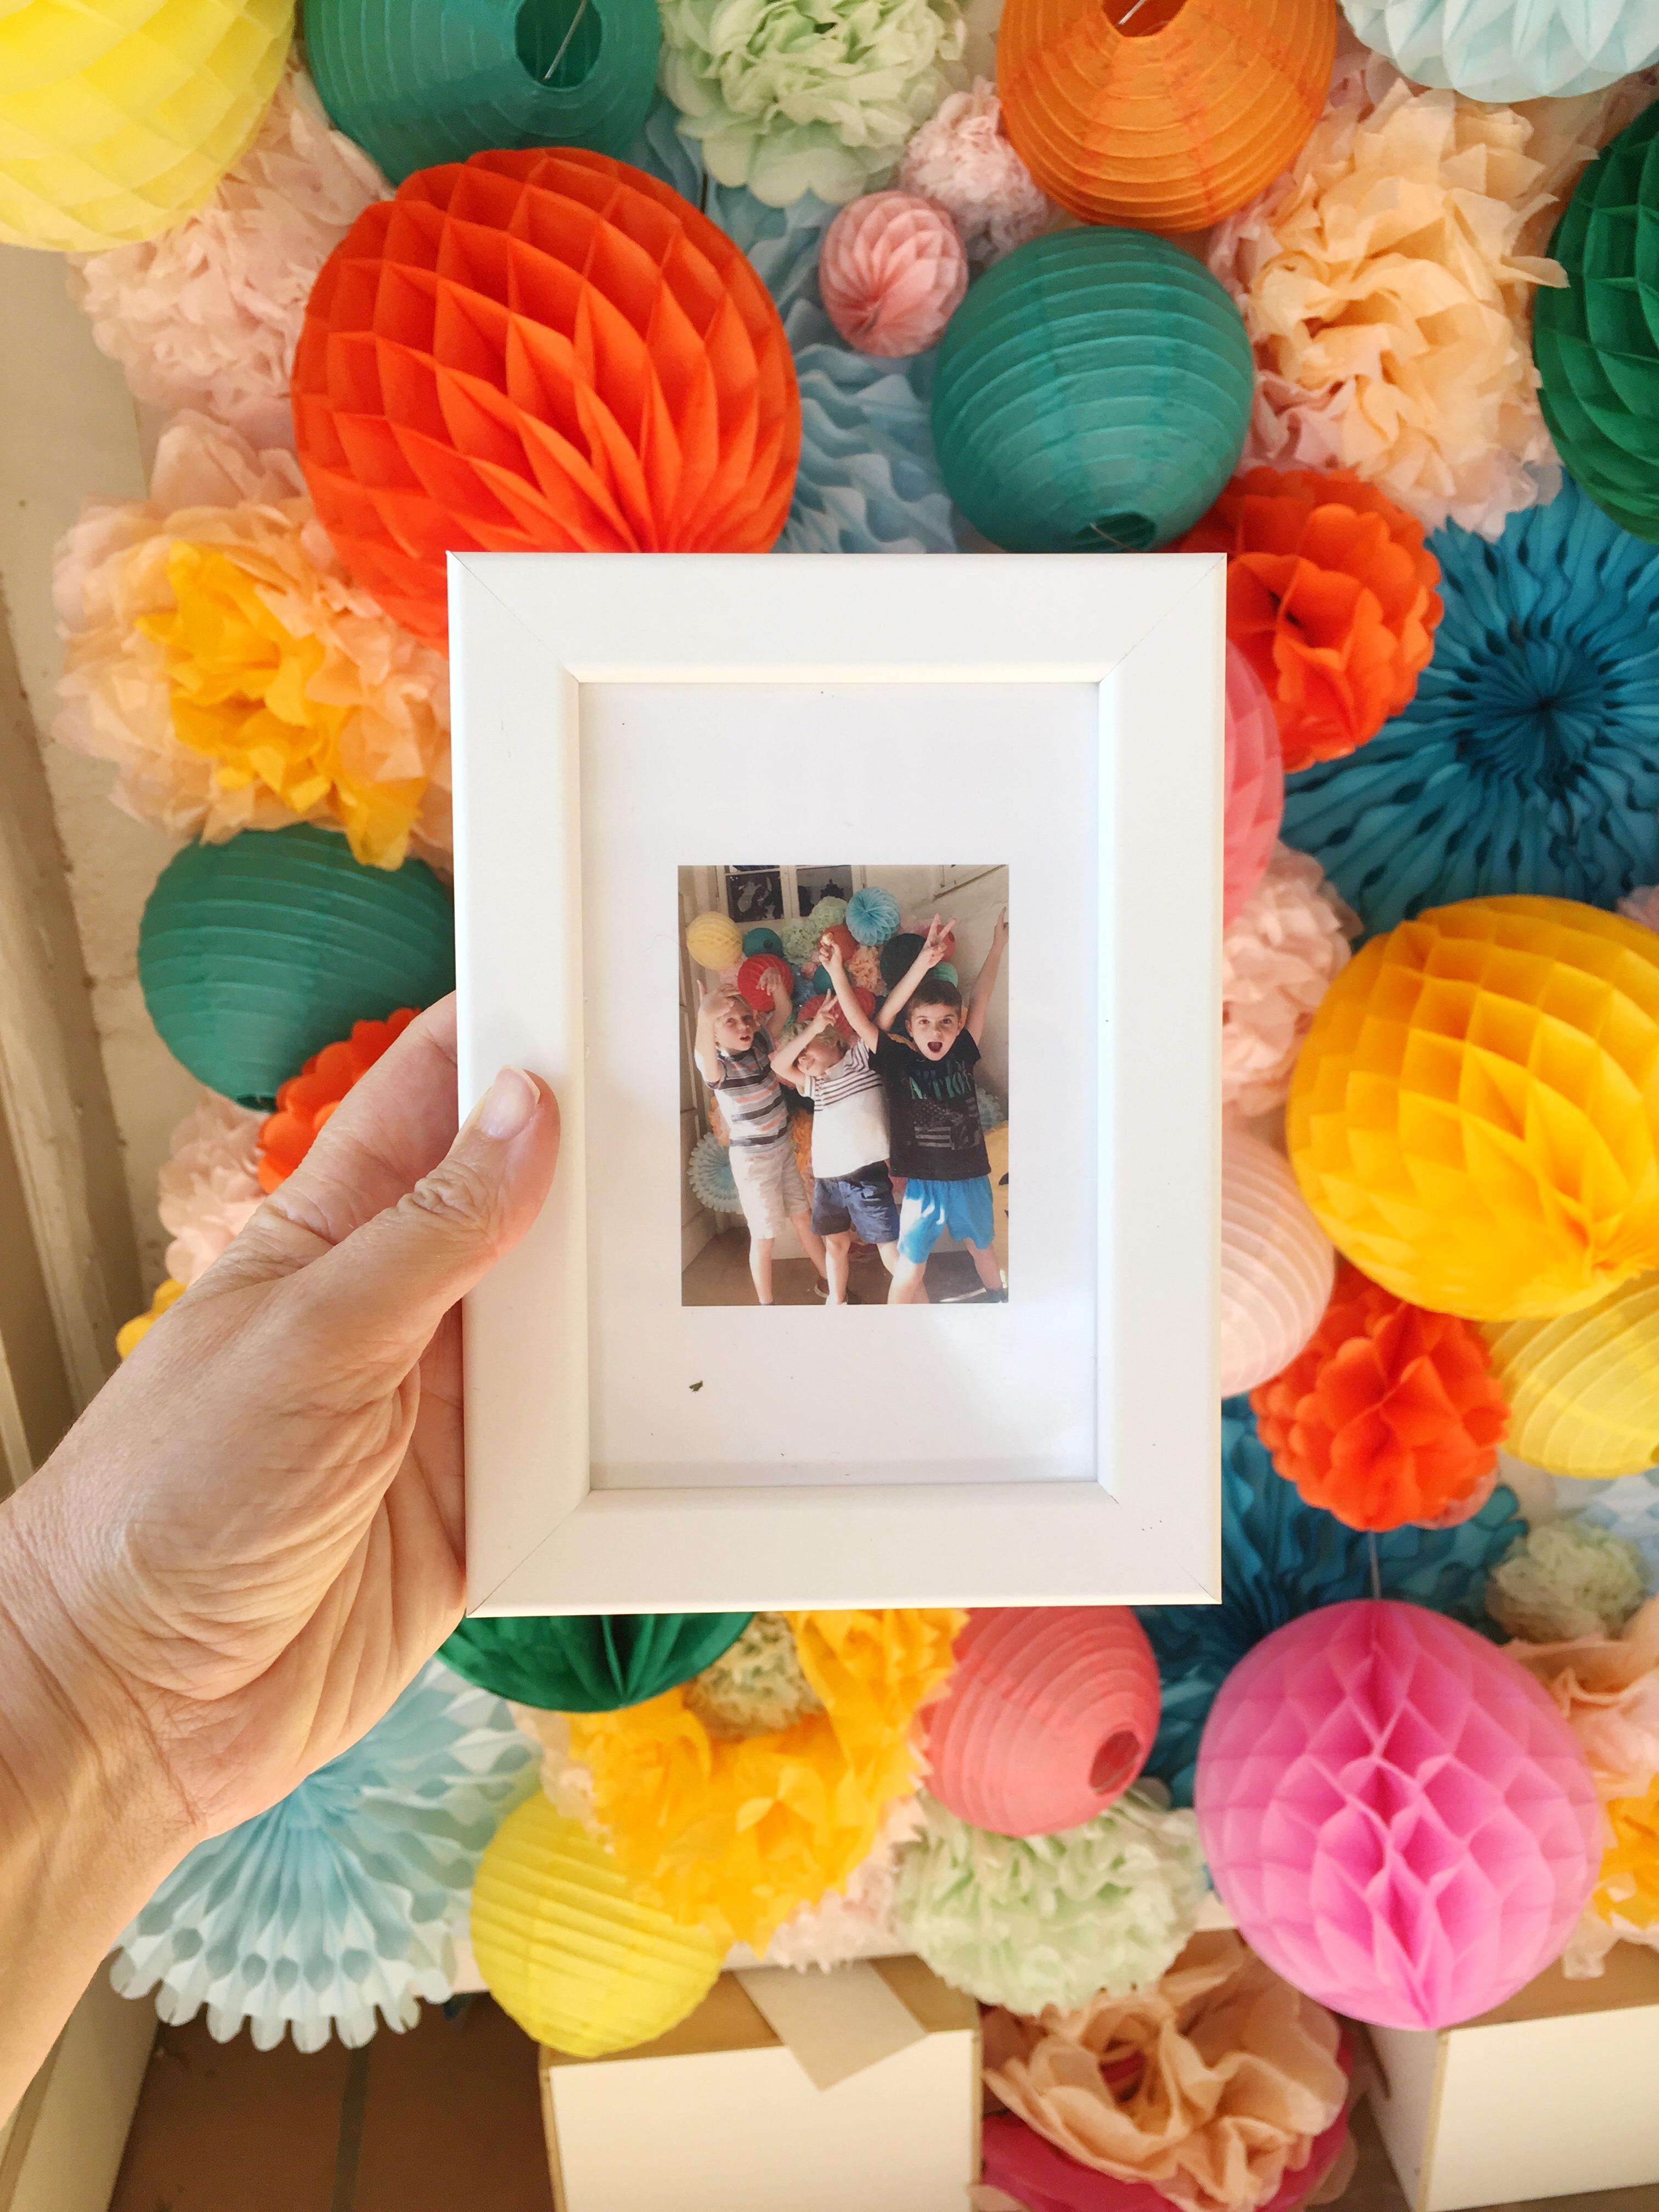 Photo Booth Framed